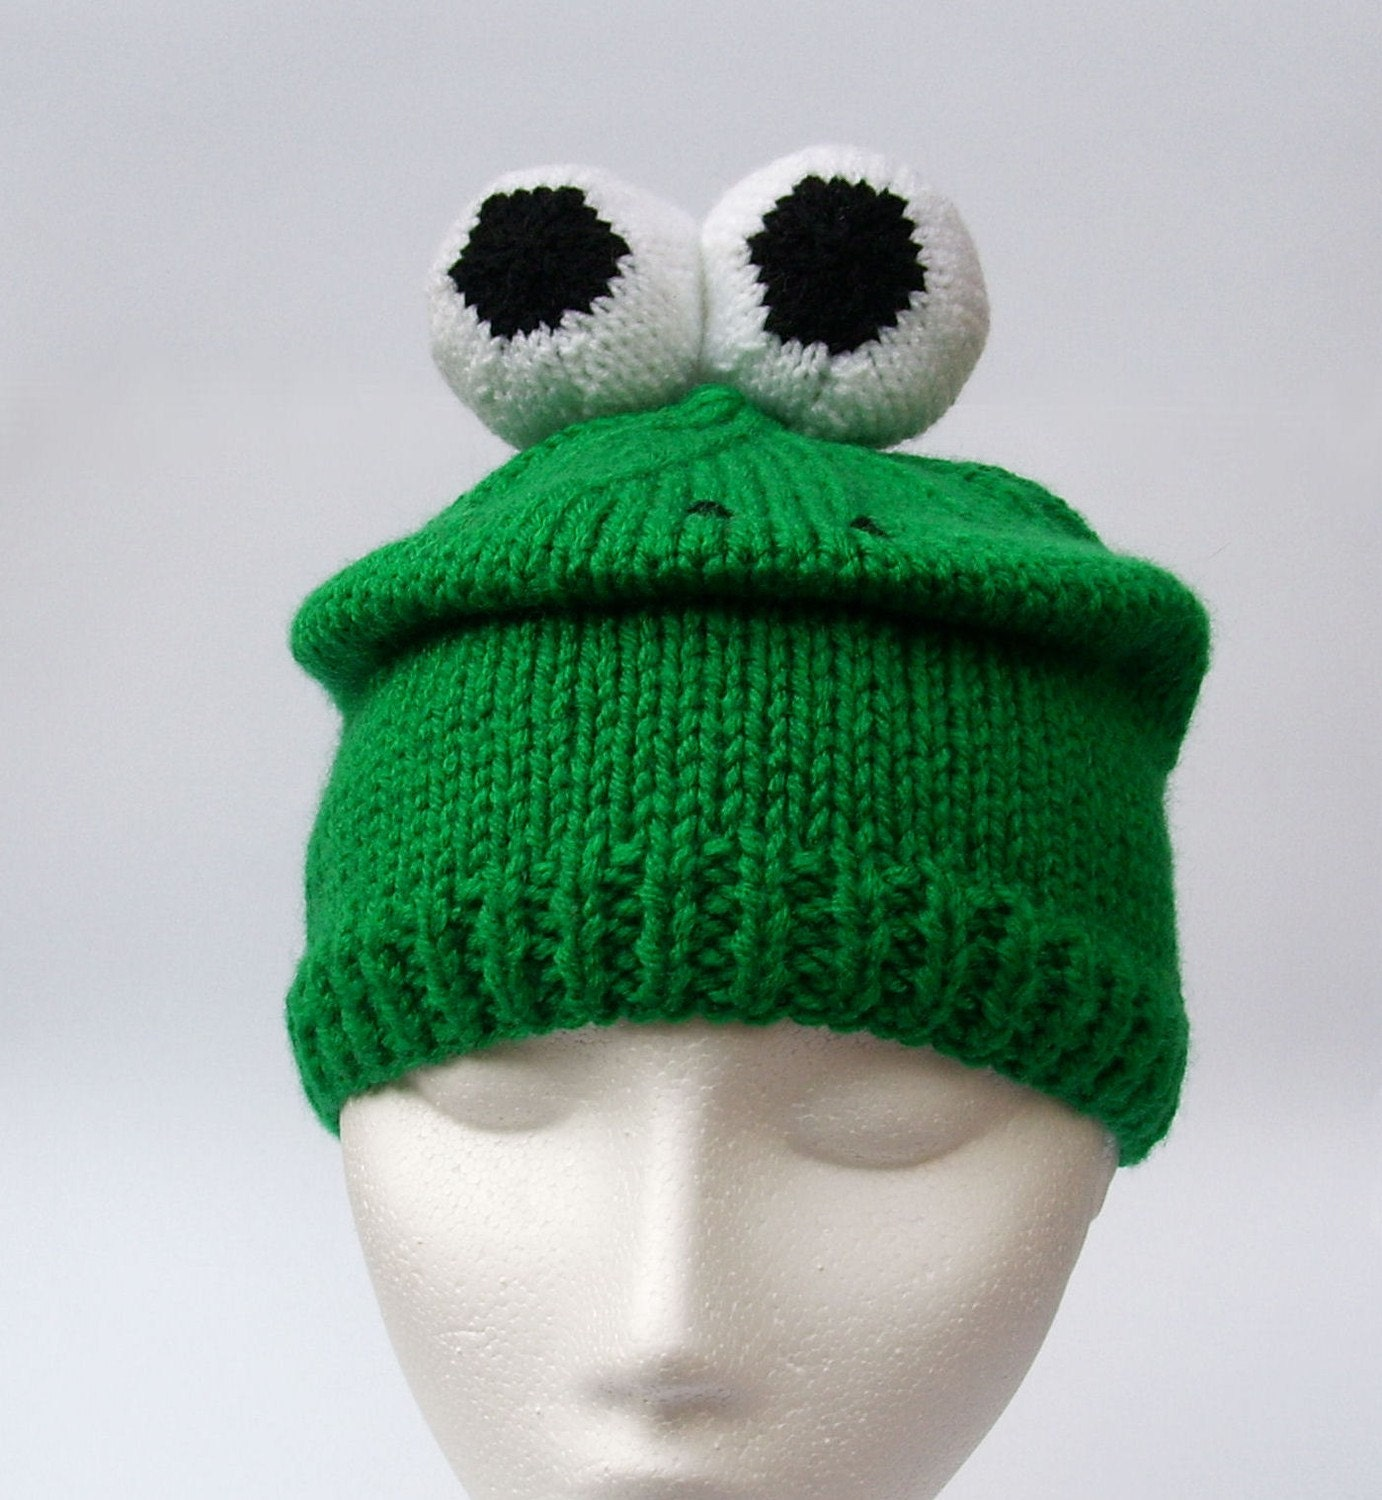 Knit Pattern For Frog Hat : Knitted Frog Hat Animal beanie in Green with eyeballs by ...